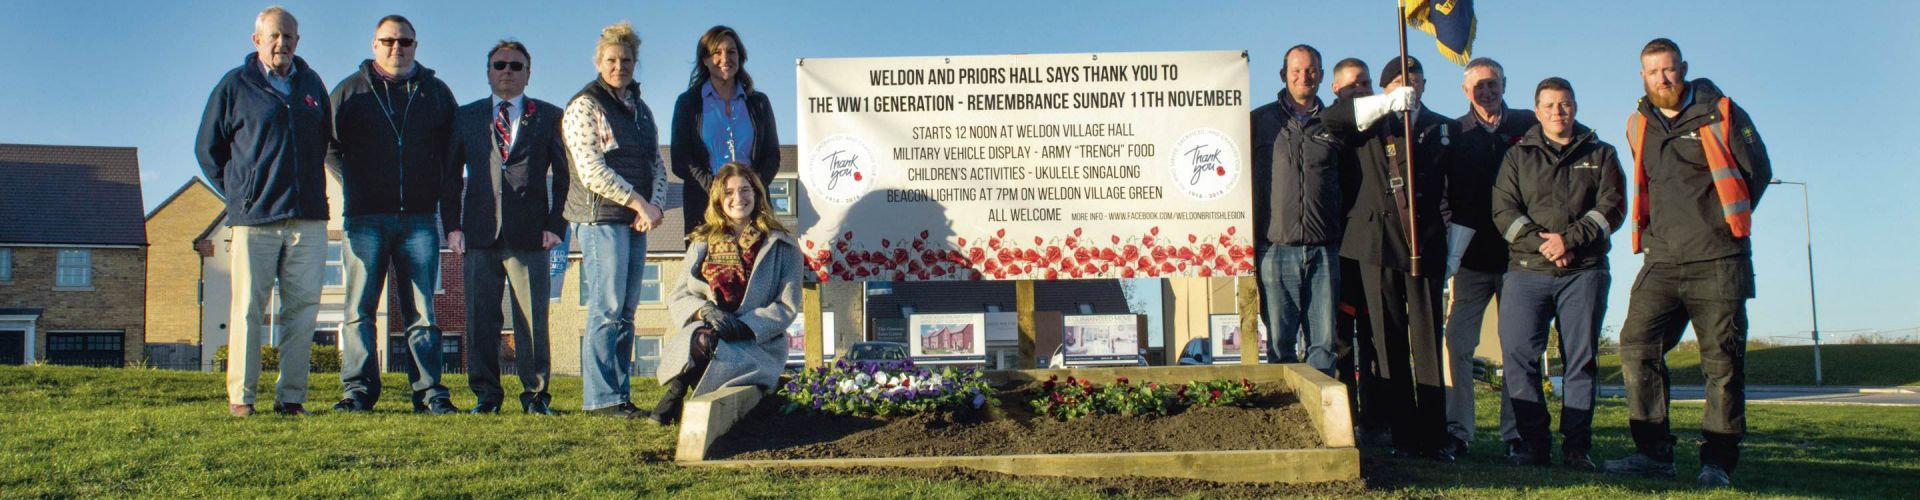 Case study Memorial Garden Opening – Priors Hall _Banner.jpg